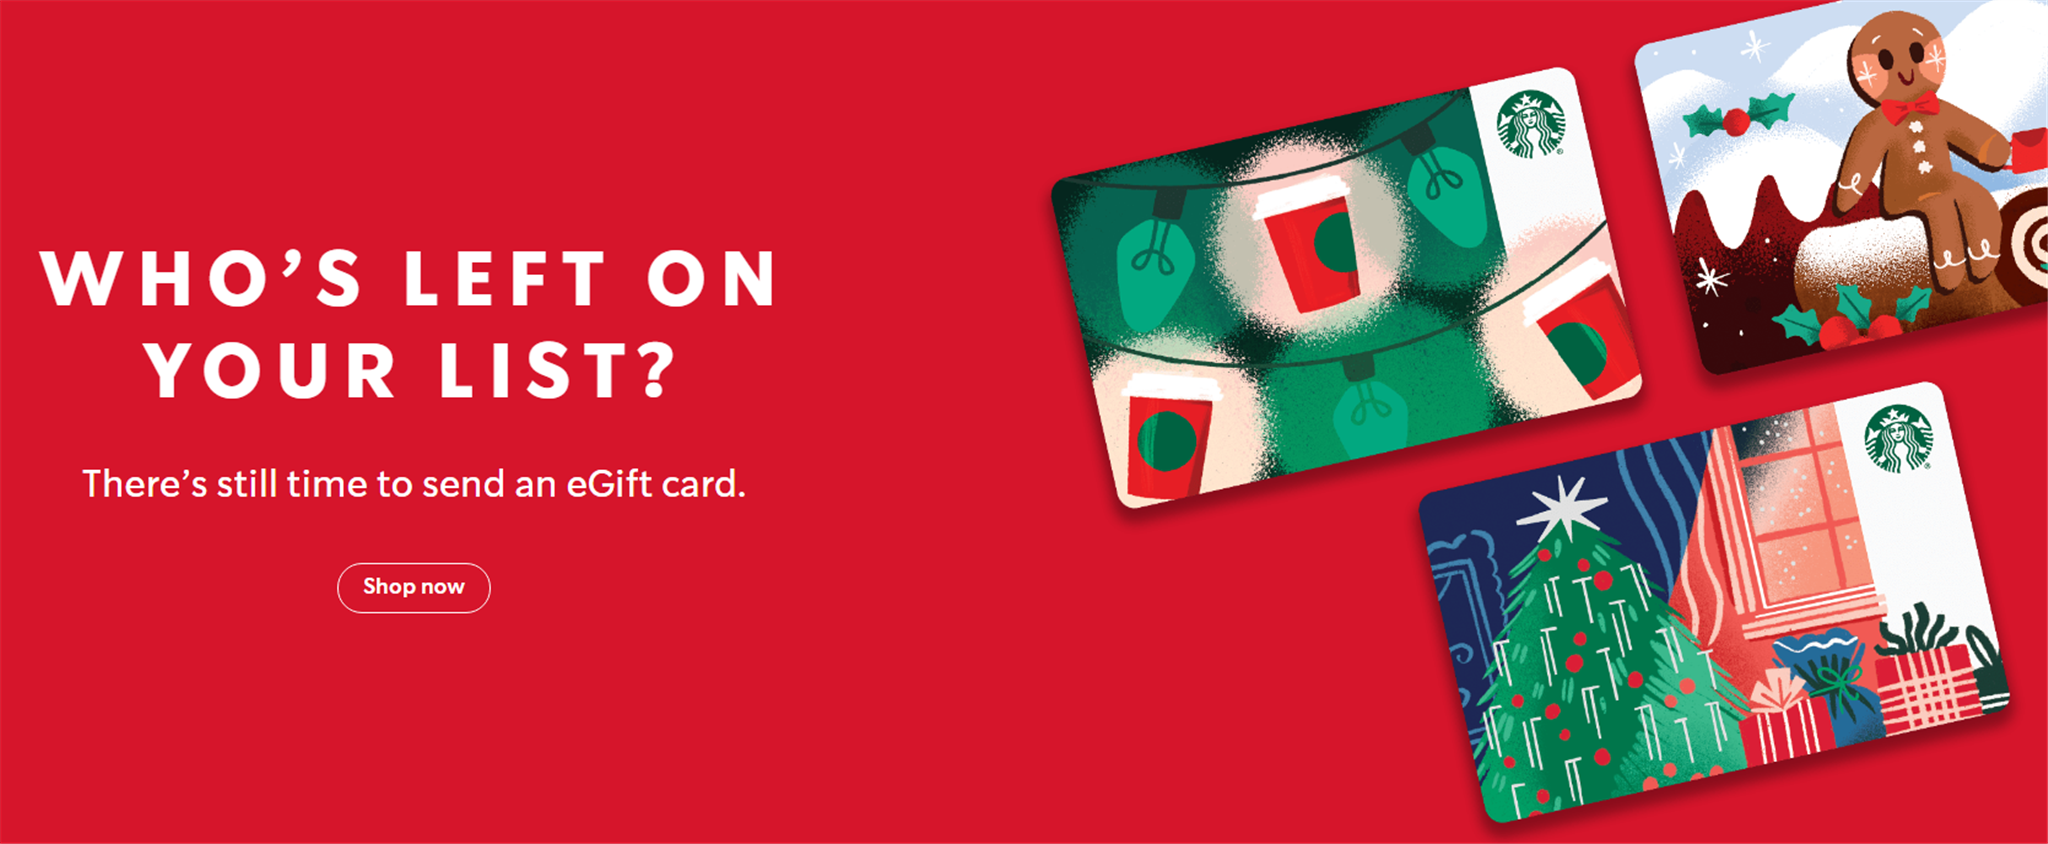 Starbucks – FREE $10 eGift Card with Purchase of eGift Card of $10 or More and Pay with Mastercard!